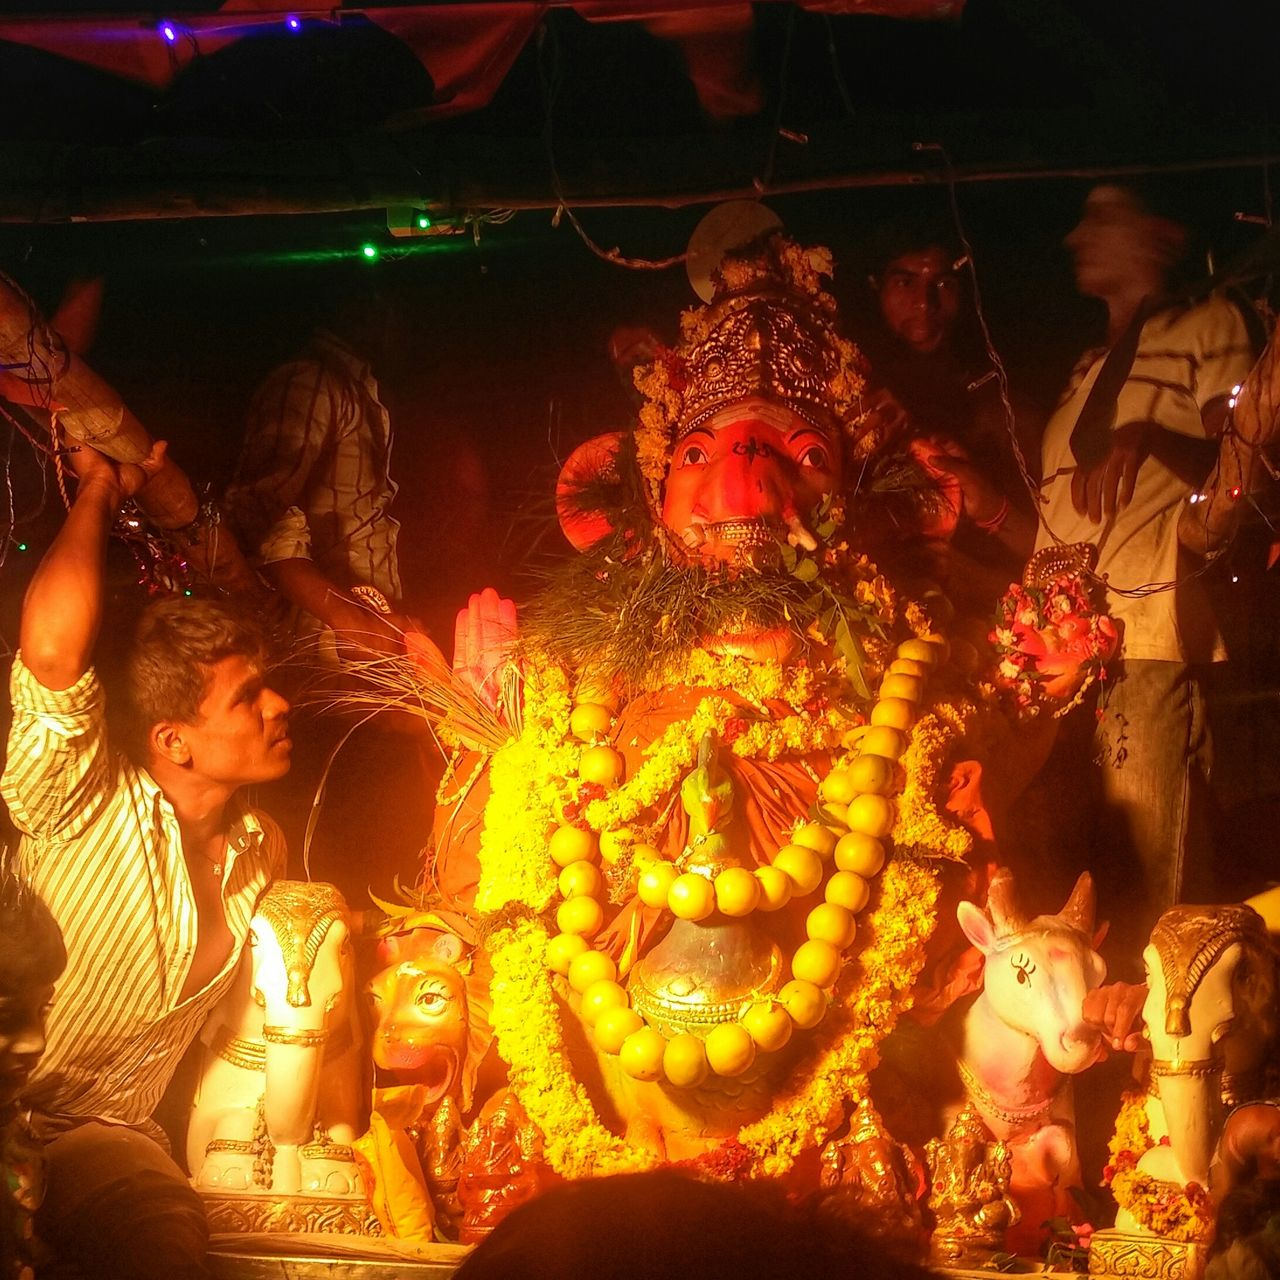 celebration, illuminated, night, cultures, tradition, indoors, statue, togetherness, no people